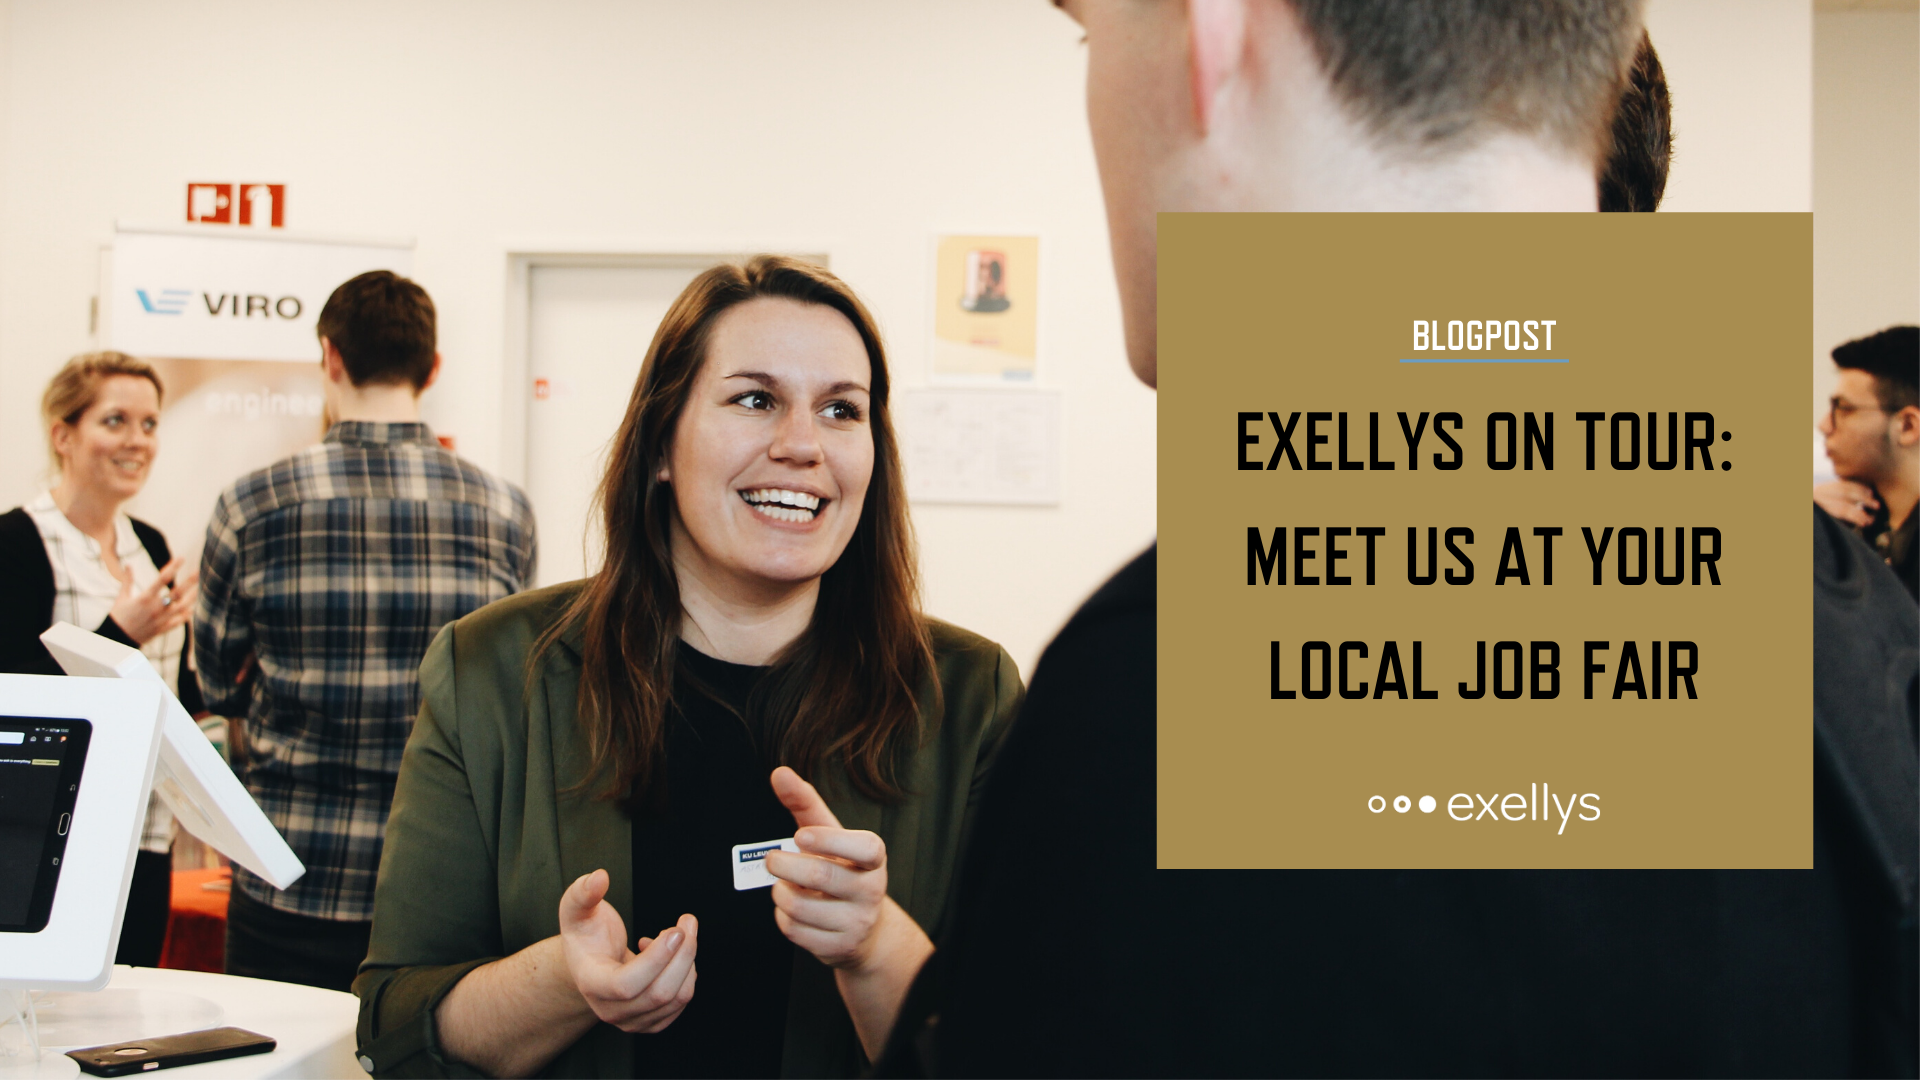 Exellys on tour – Meet us at your local job fair - LinkedIn share image